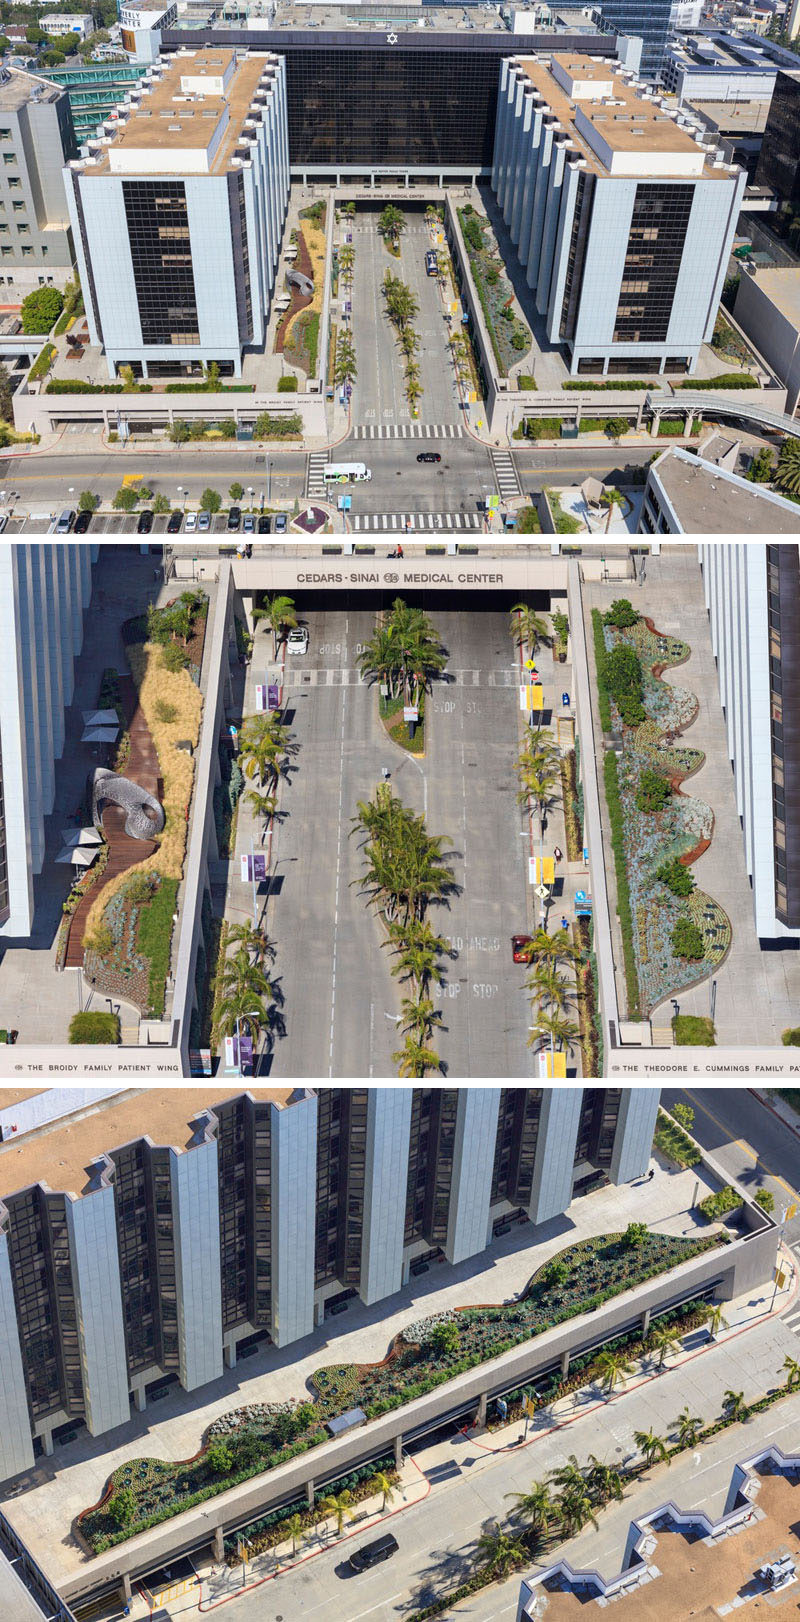 AHBE Landscape Architects have designed the new Healing Gardens and terrace for Cedars-Sinai Medical Center in Los Angeles, California. The garden is separated into two concrete plaza sections that sit on top of a multi-level garage.